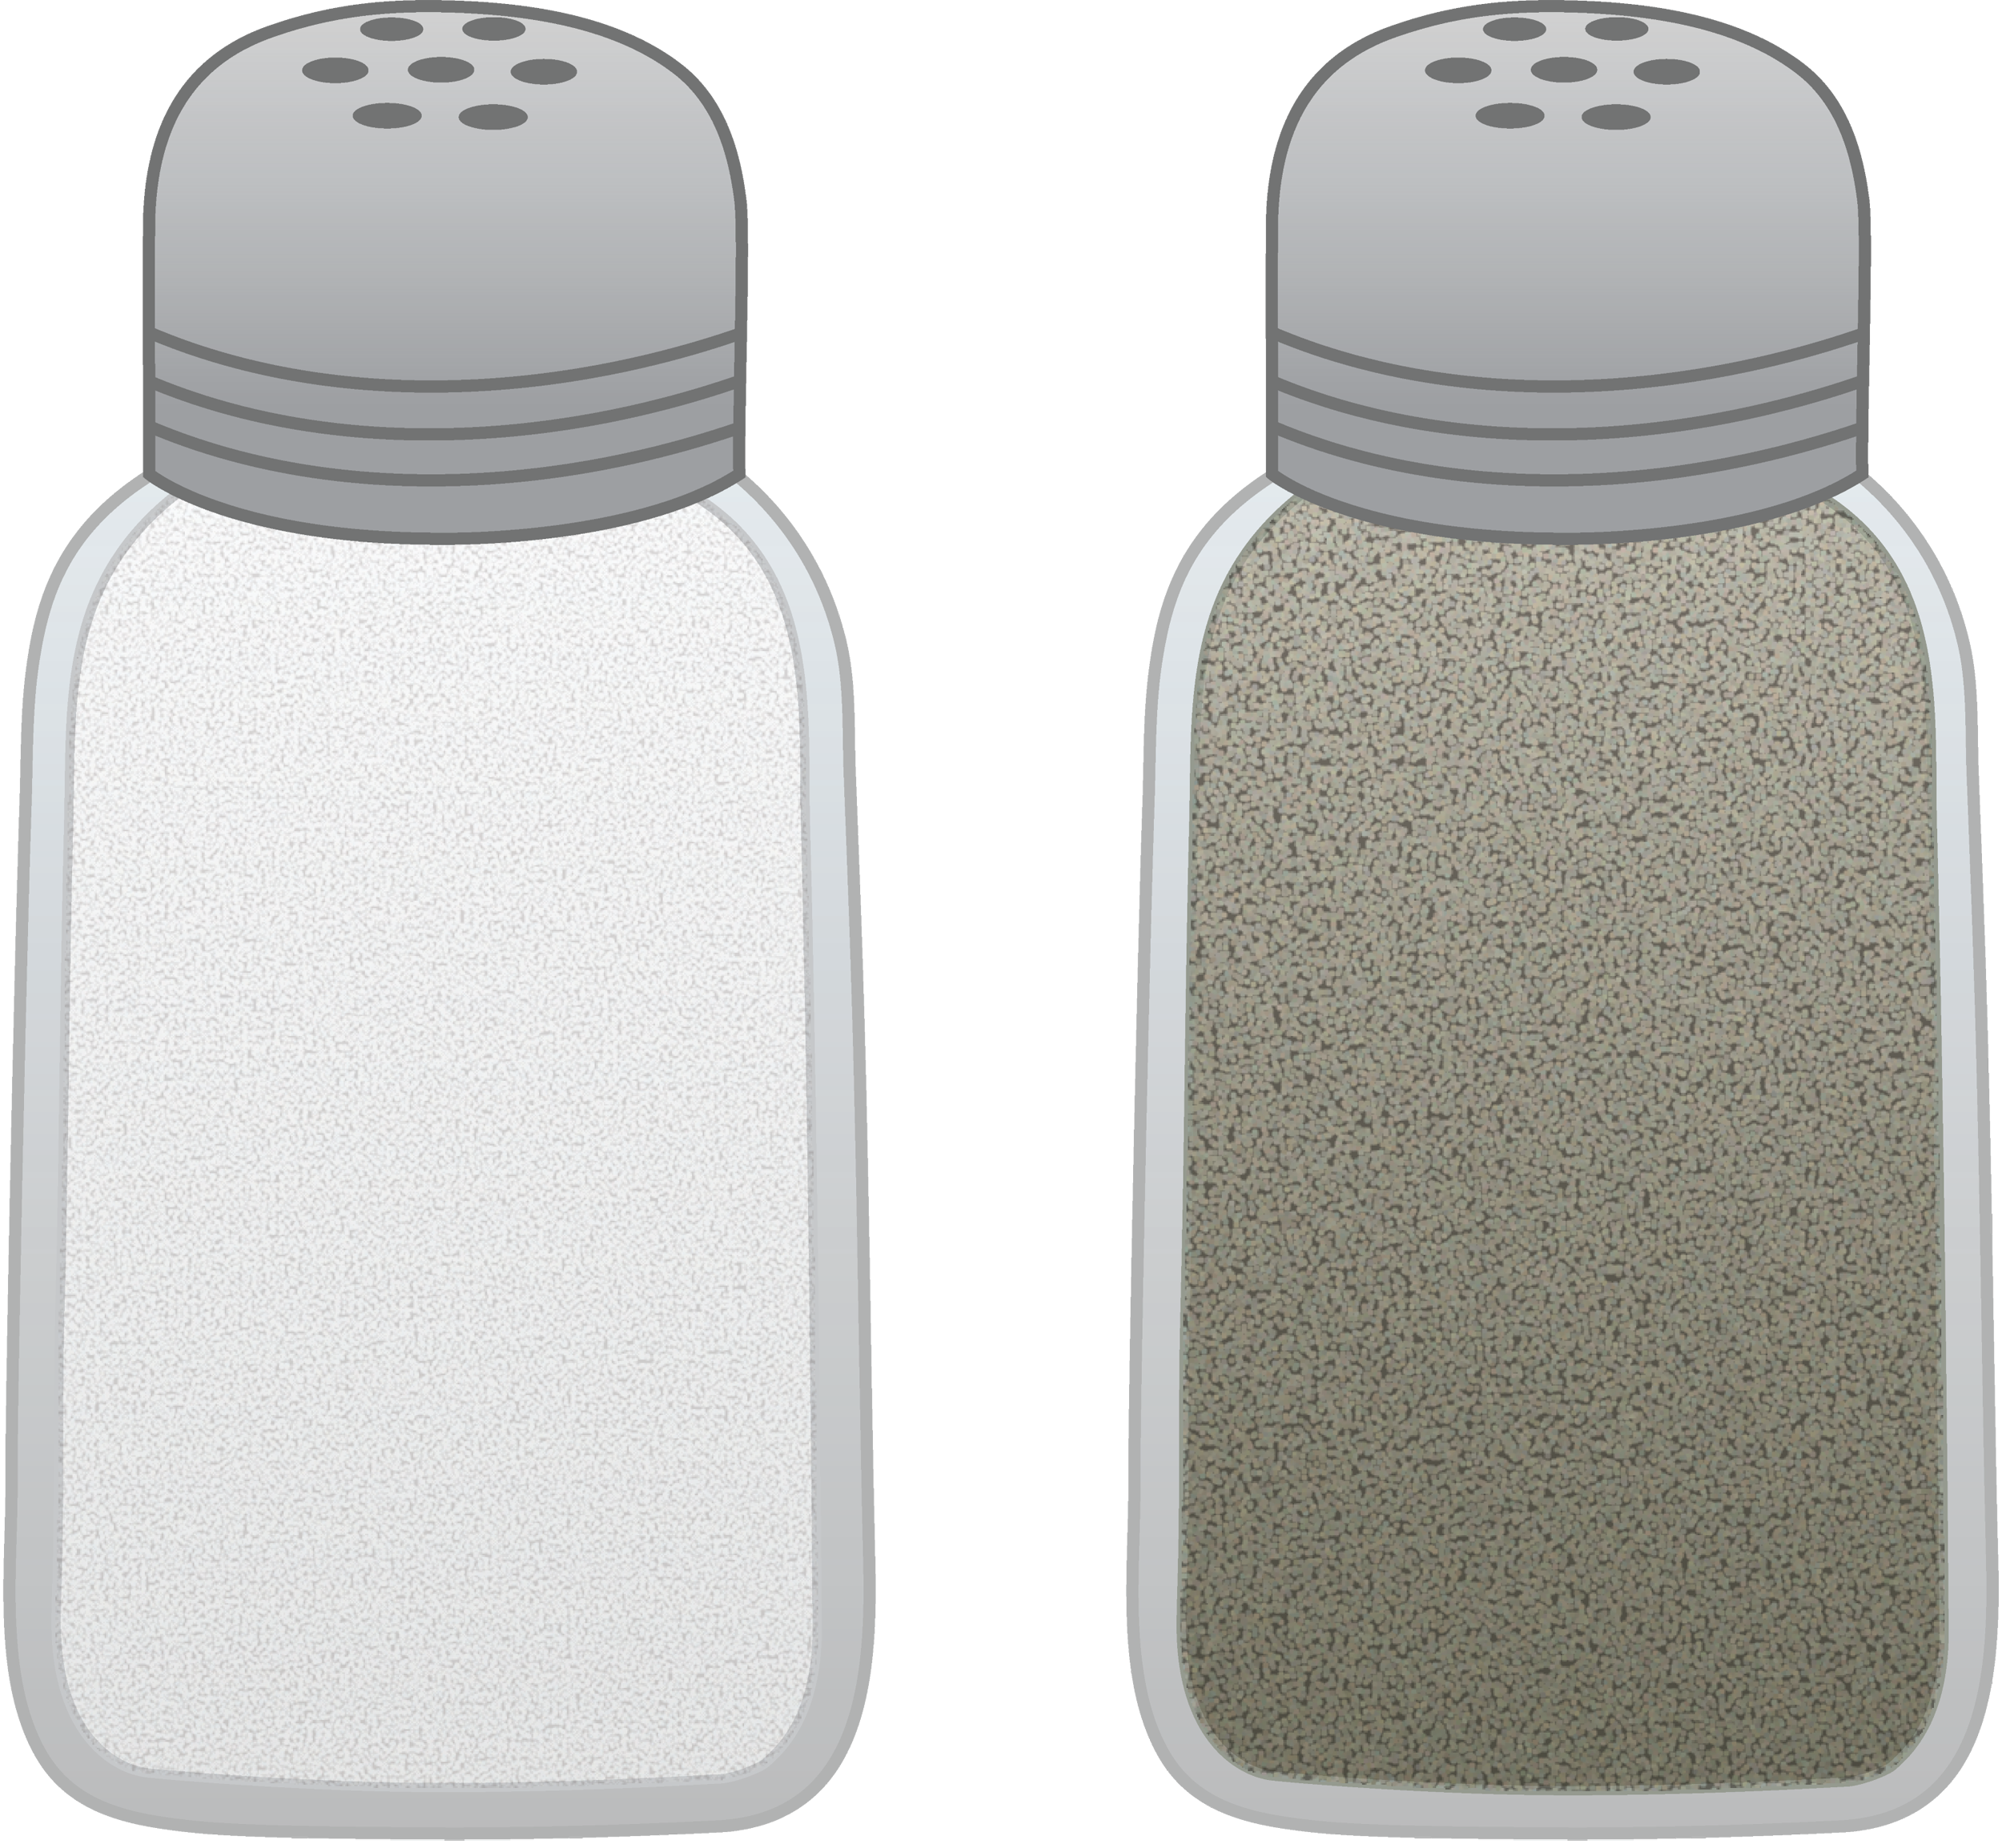 Salt and Pepper Shakers Free Clip Art